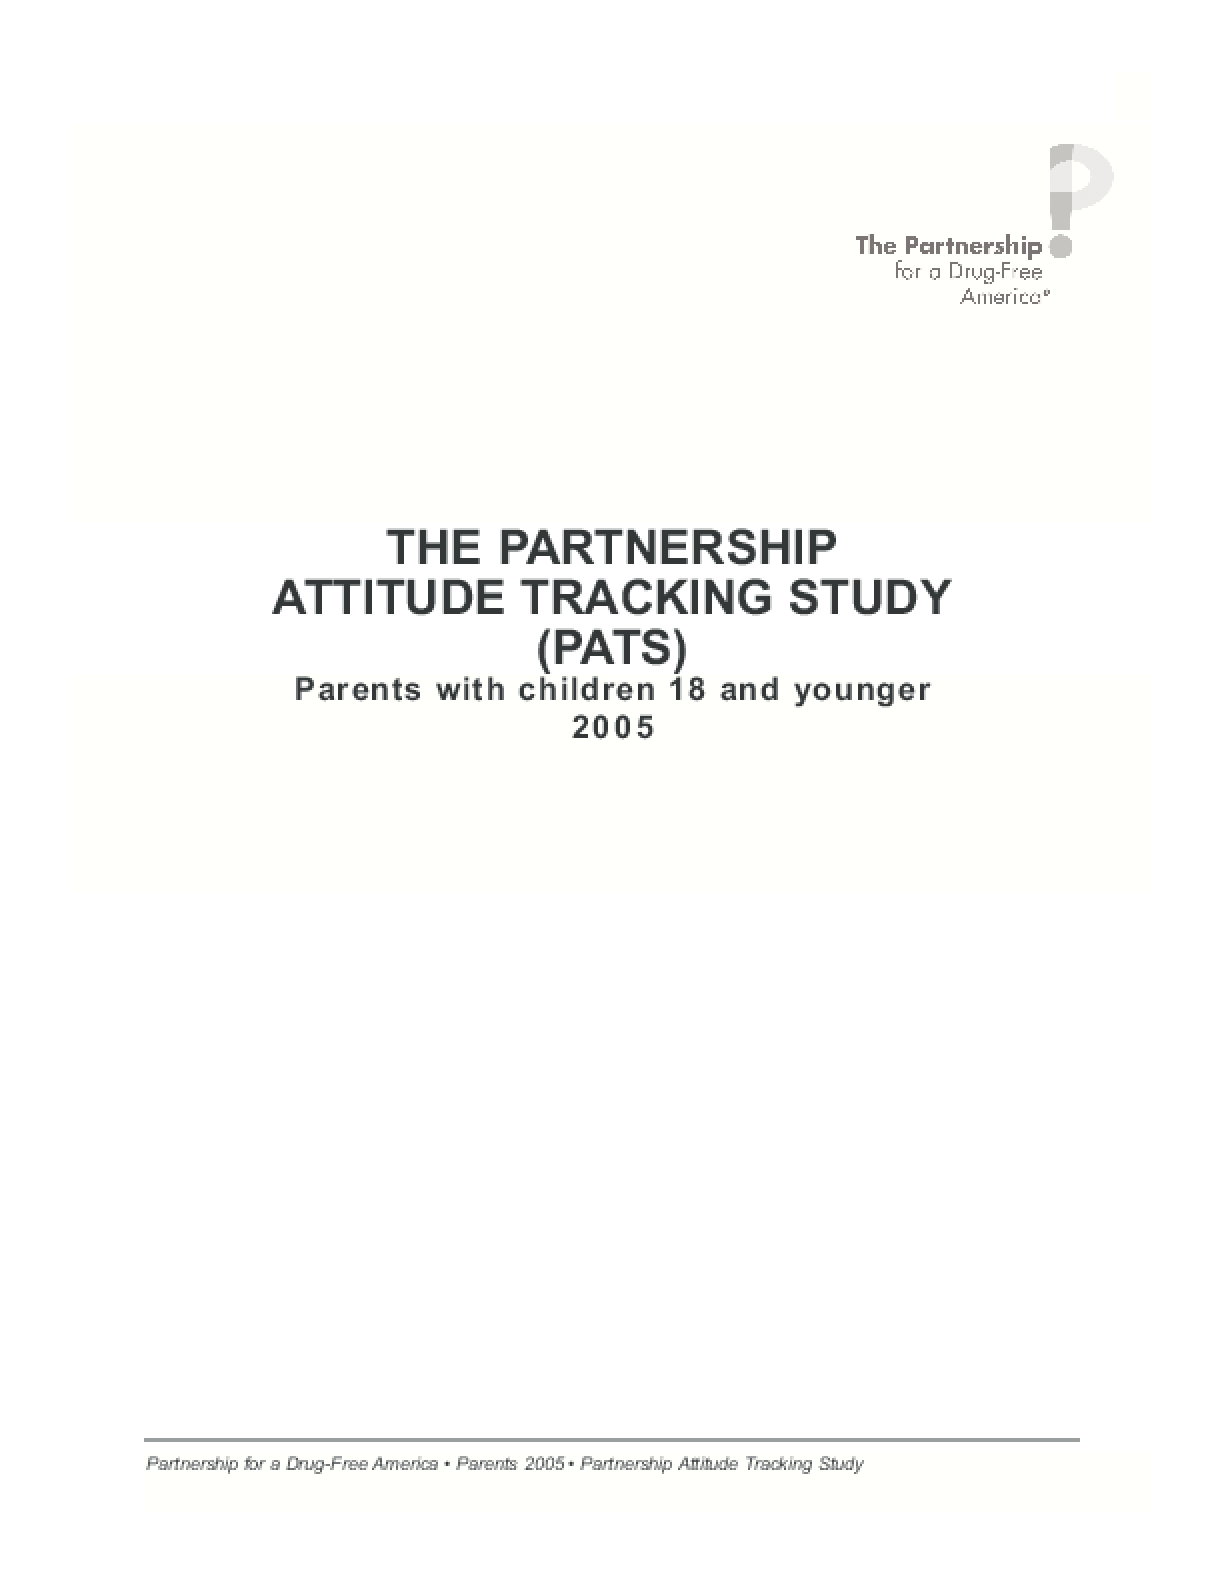 The Partnership Attitude Tracking Study